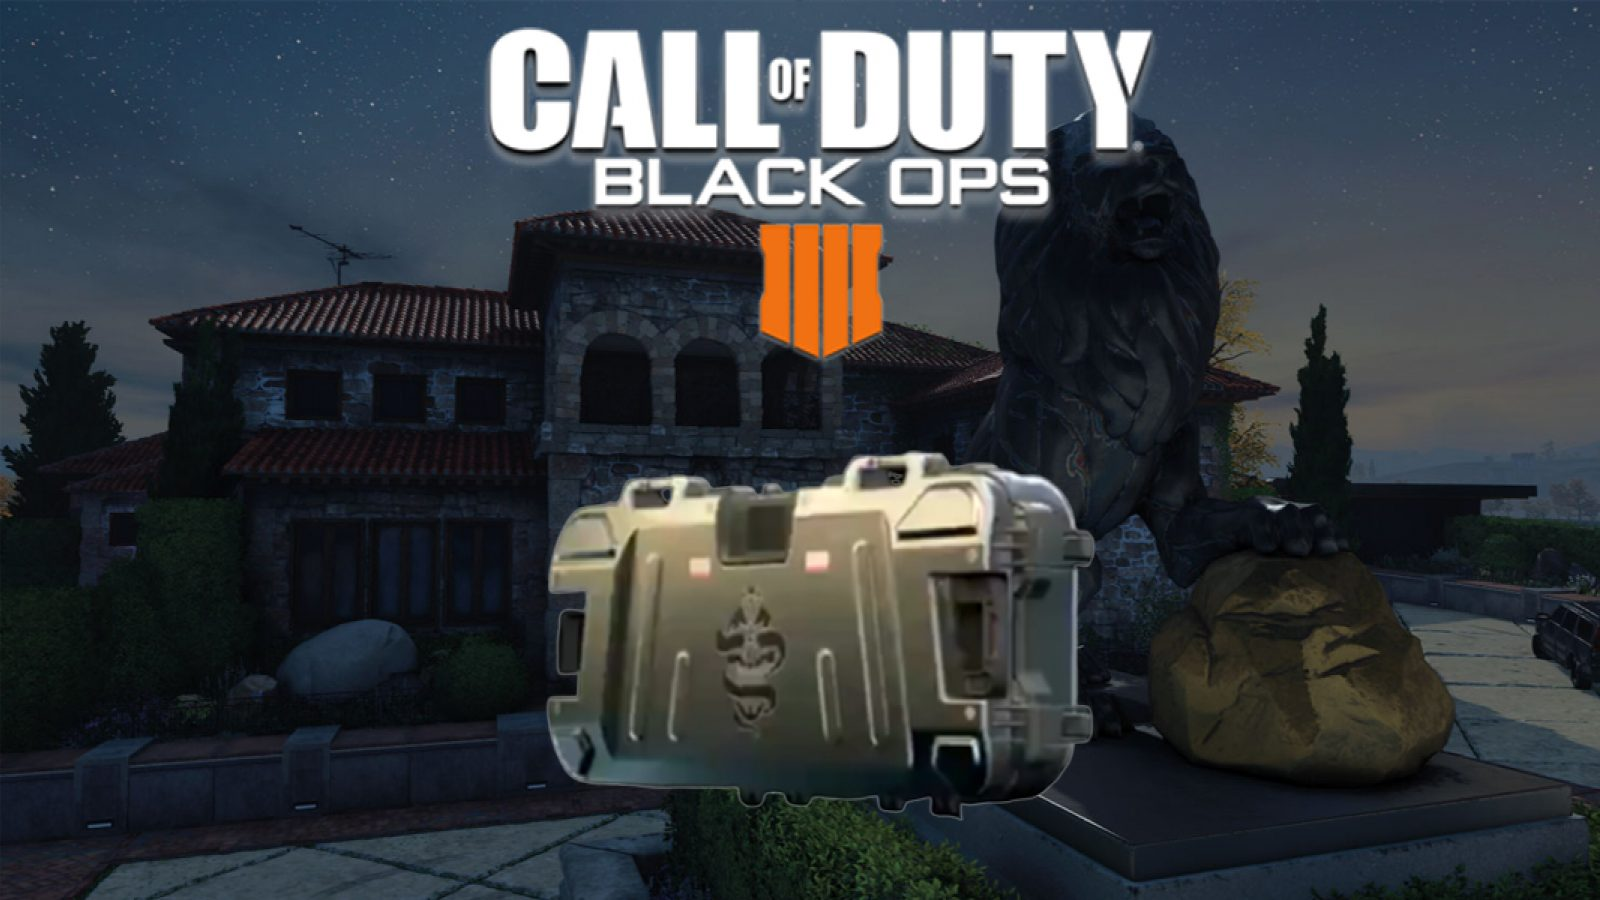 Activision's WORST Move YET: INSANE CoD Pay To Win & Expensive New 'Anti Dupe' Loot Boxes